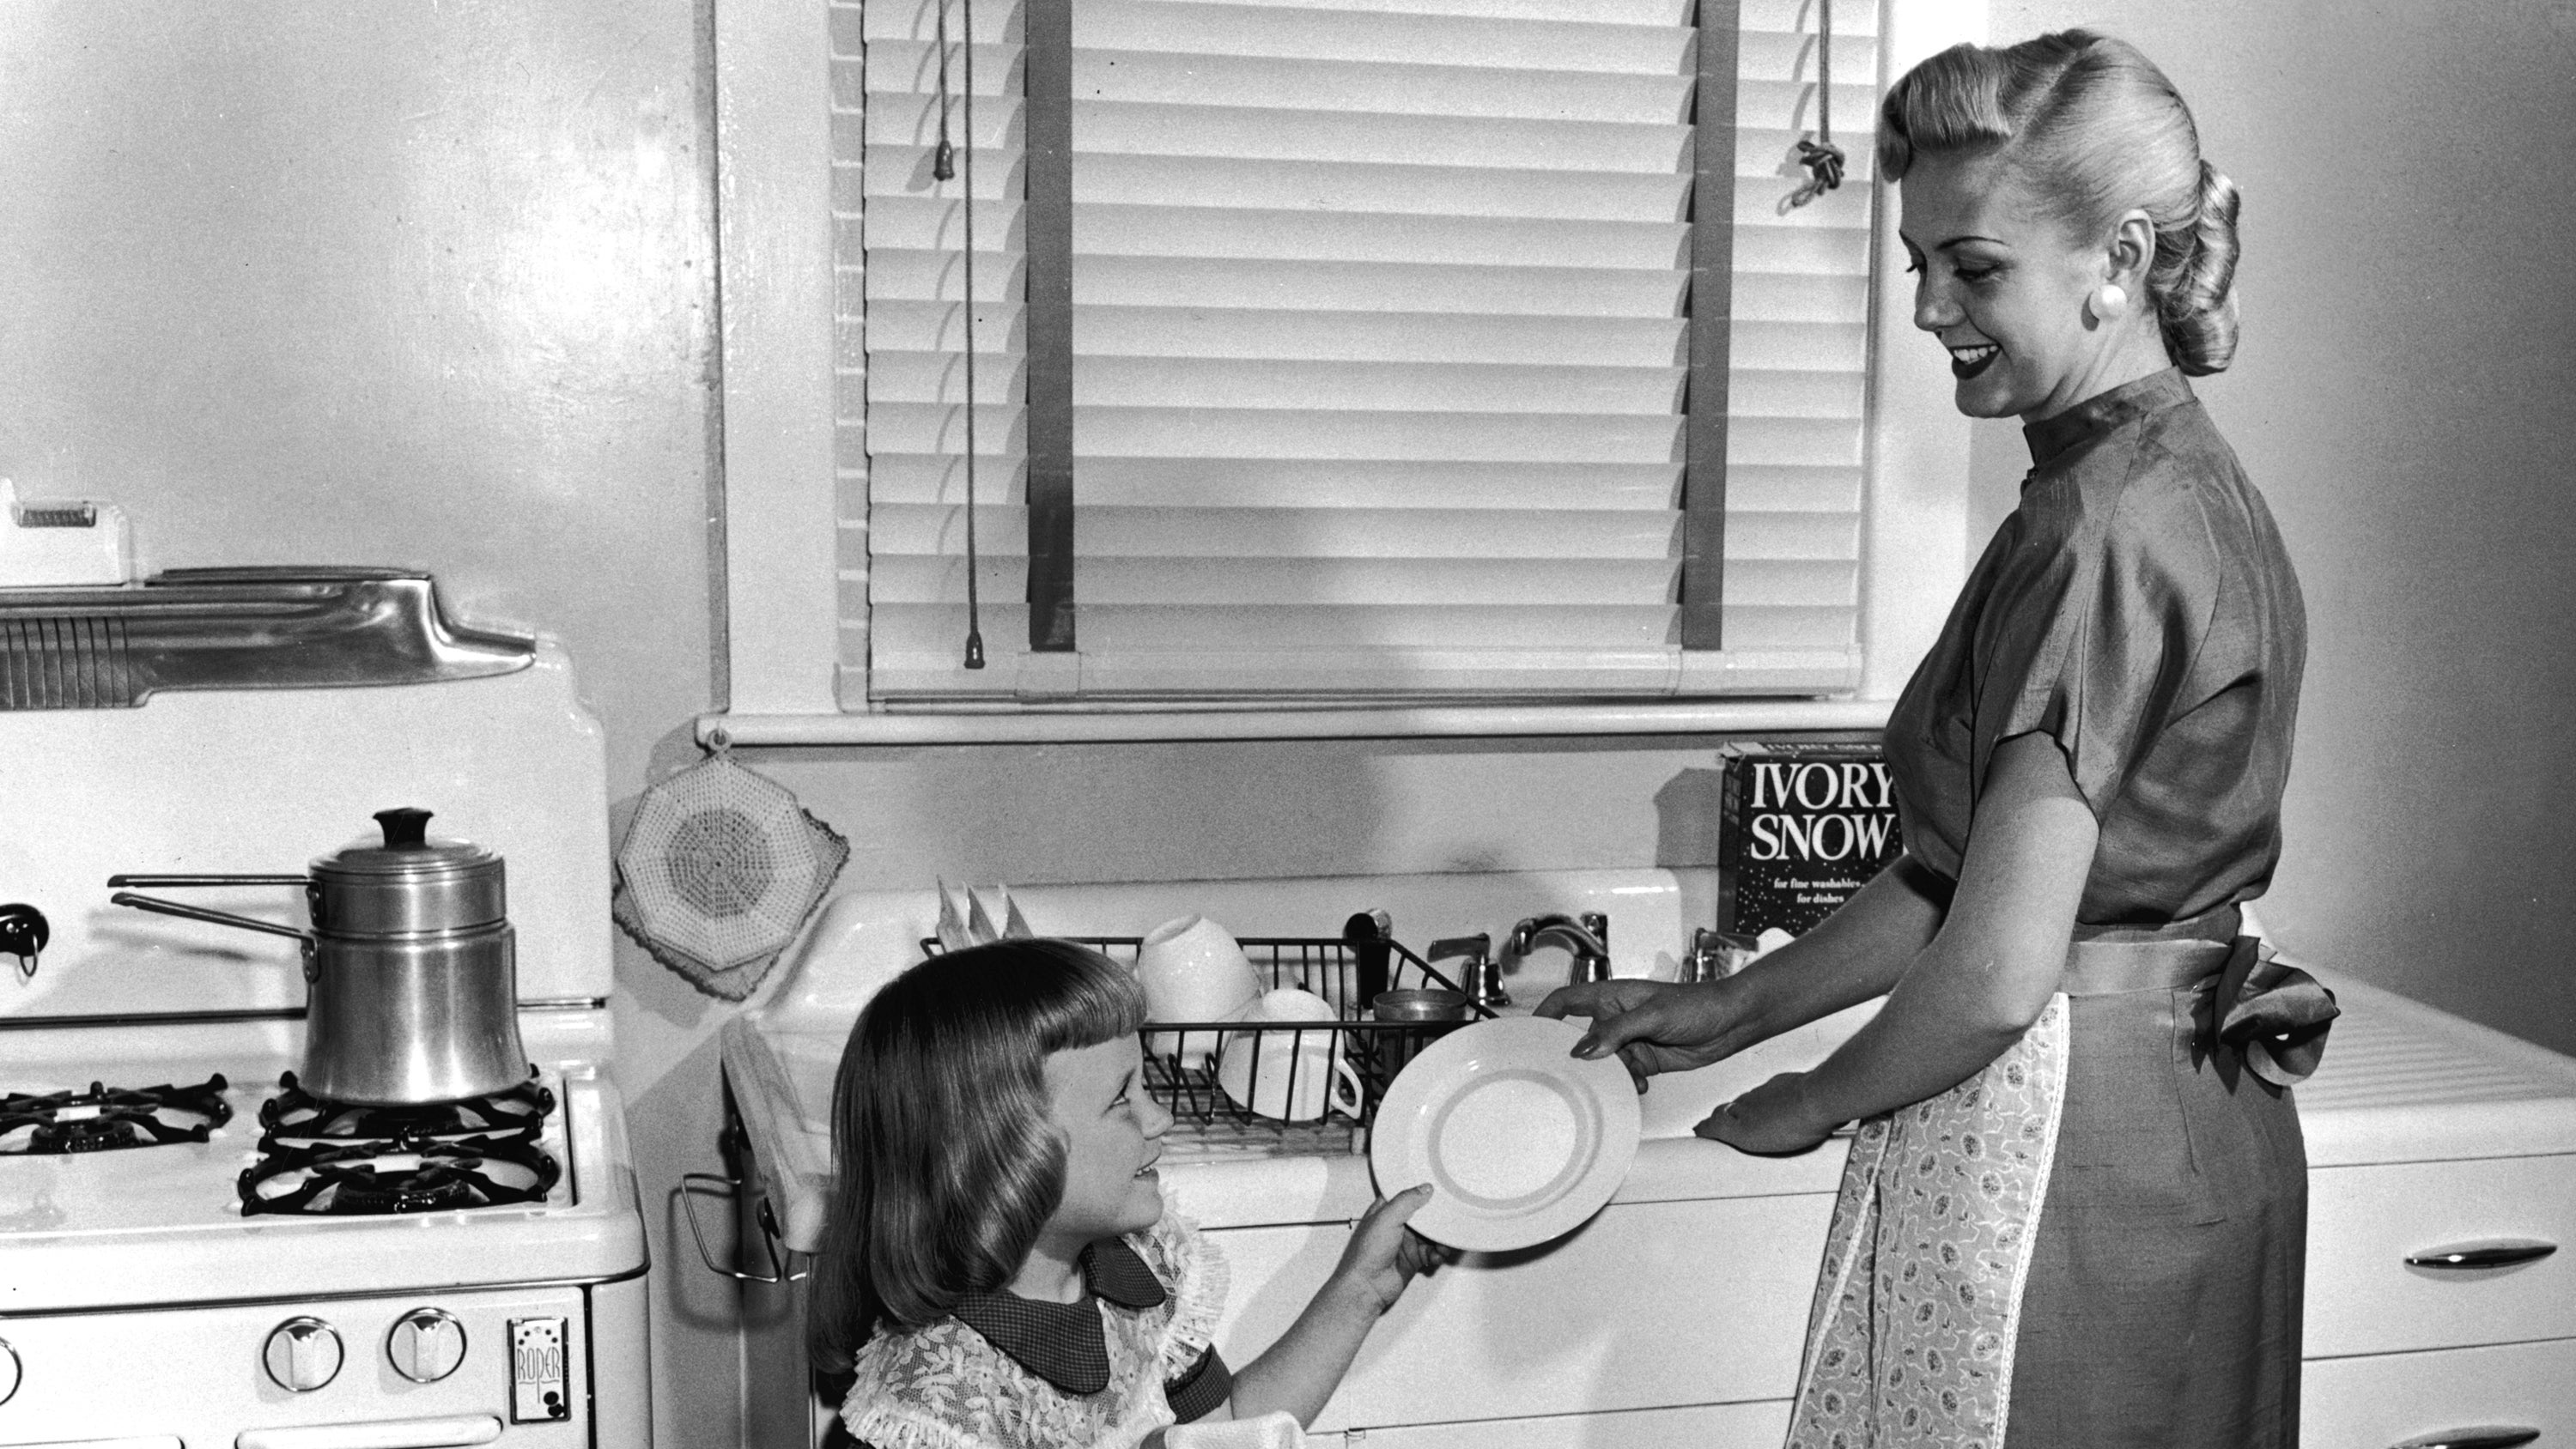 How To Get Kids To Do Chores: An Age-By-Age Guide